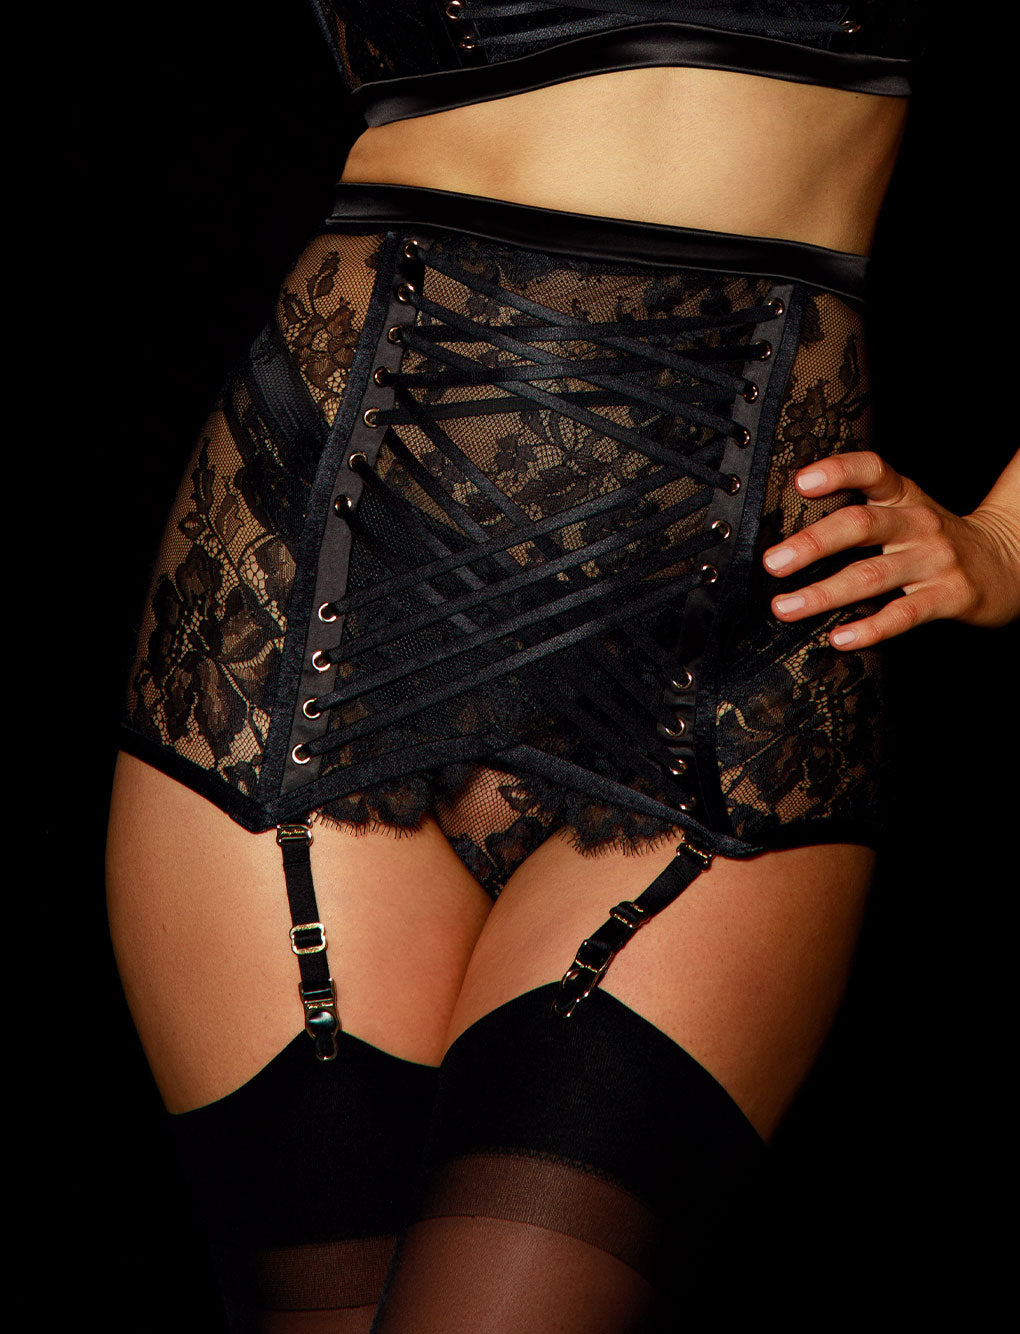 Alexandra Garter Belt | Shop Garter Belts | Honey Birdette